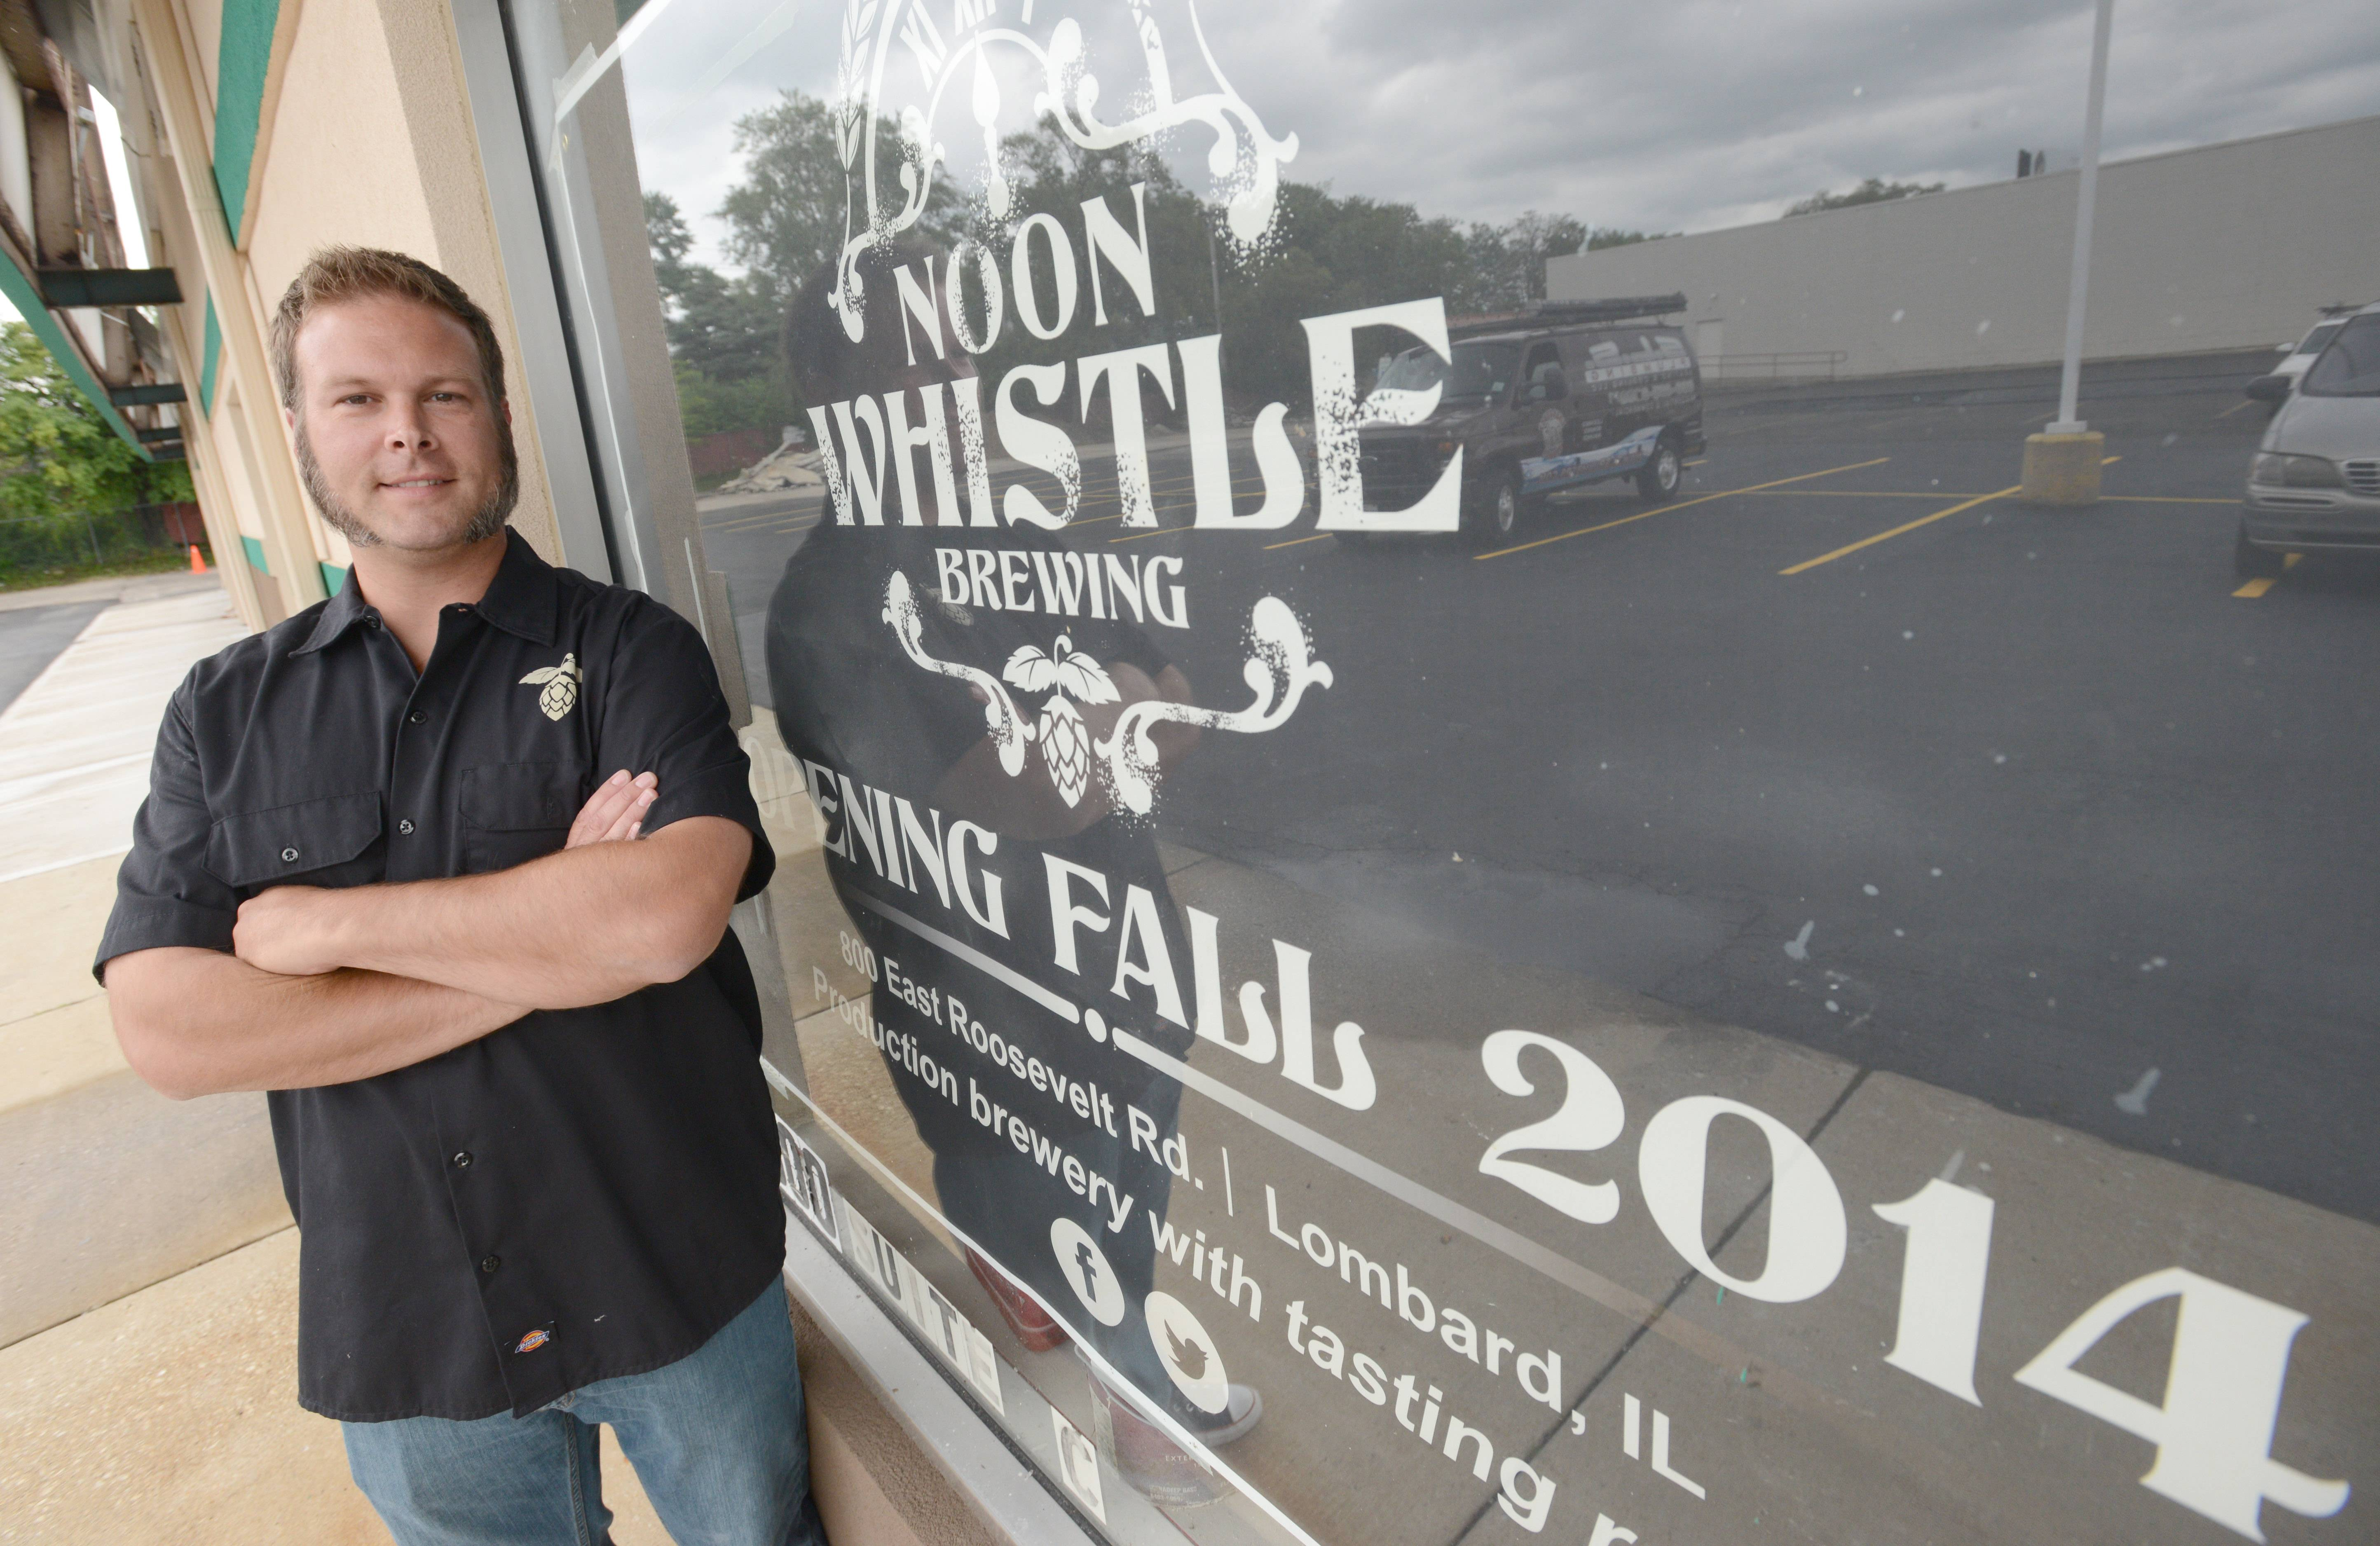 Paul Michna/pmichna@dailyherald.com Paul Kreiner is the brewmaster at Noon Whistle Brewery in Lombard, slated to open this fall.